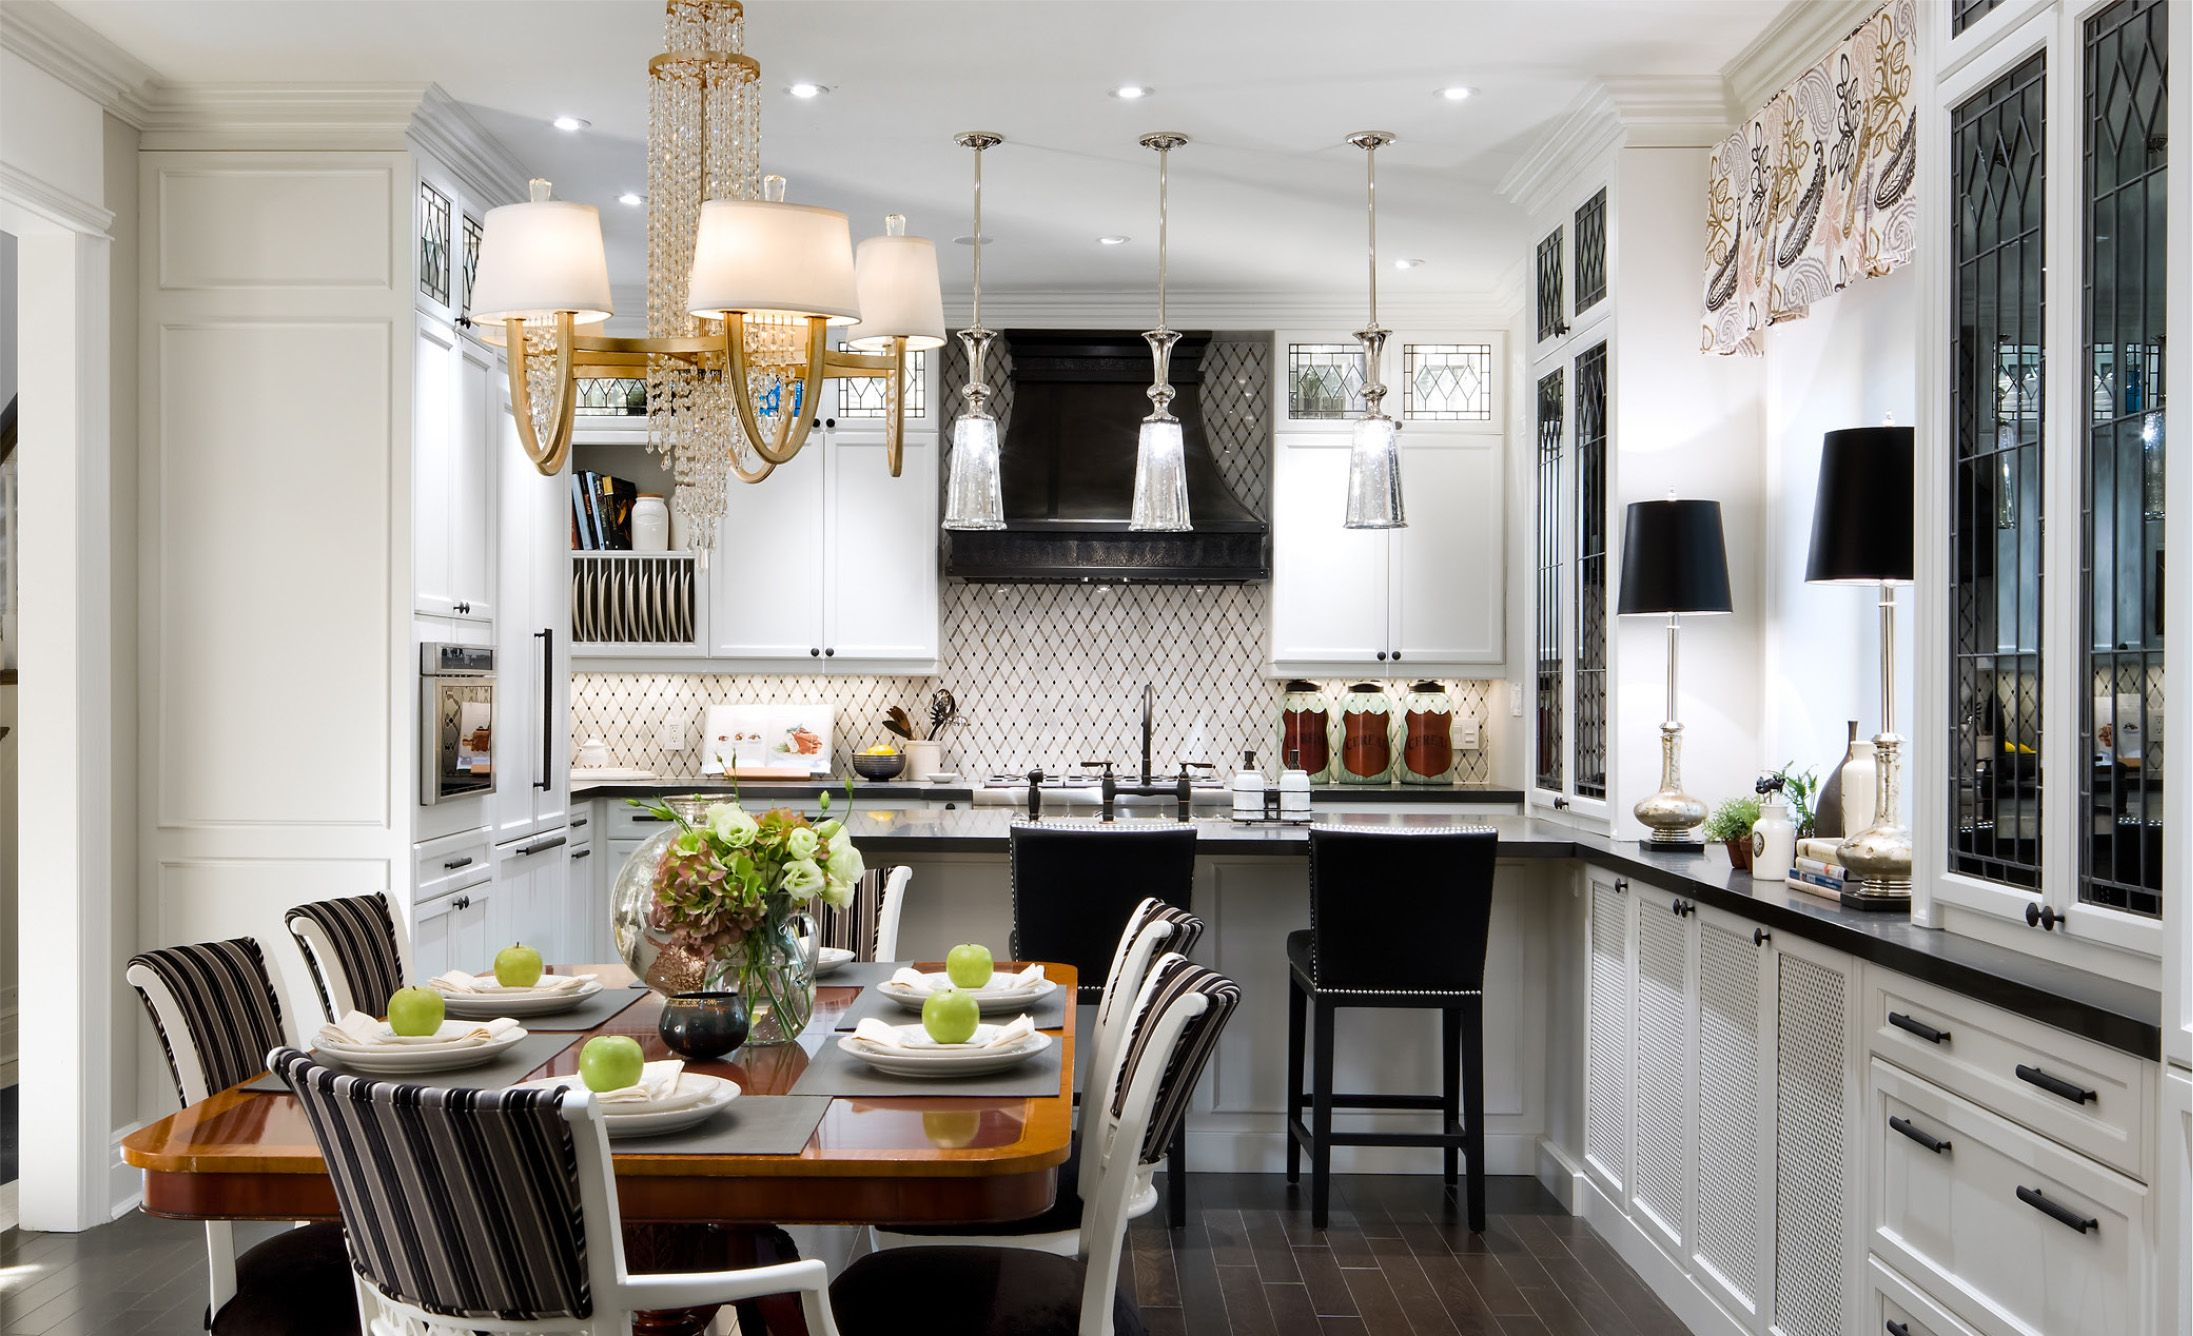 classy candice olson living rooms pictures. 5 home Feng Shui tips to create positive energy  Bellacor Kitchen Dining LivingRoom KitchenCandice OlsonWhite Corbett